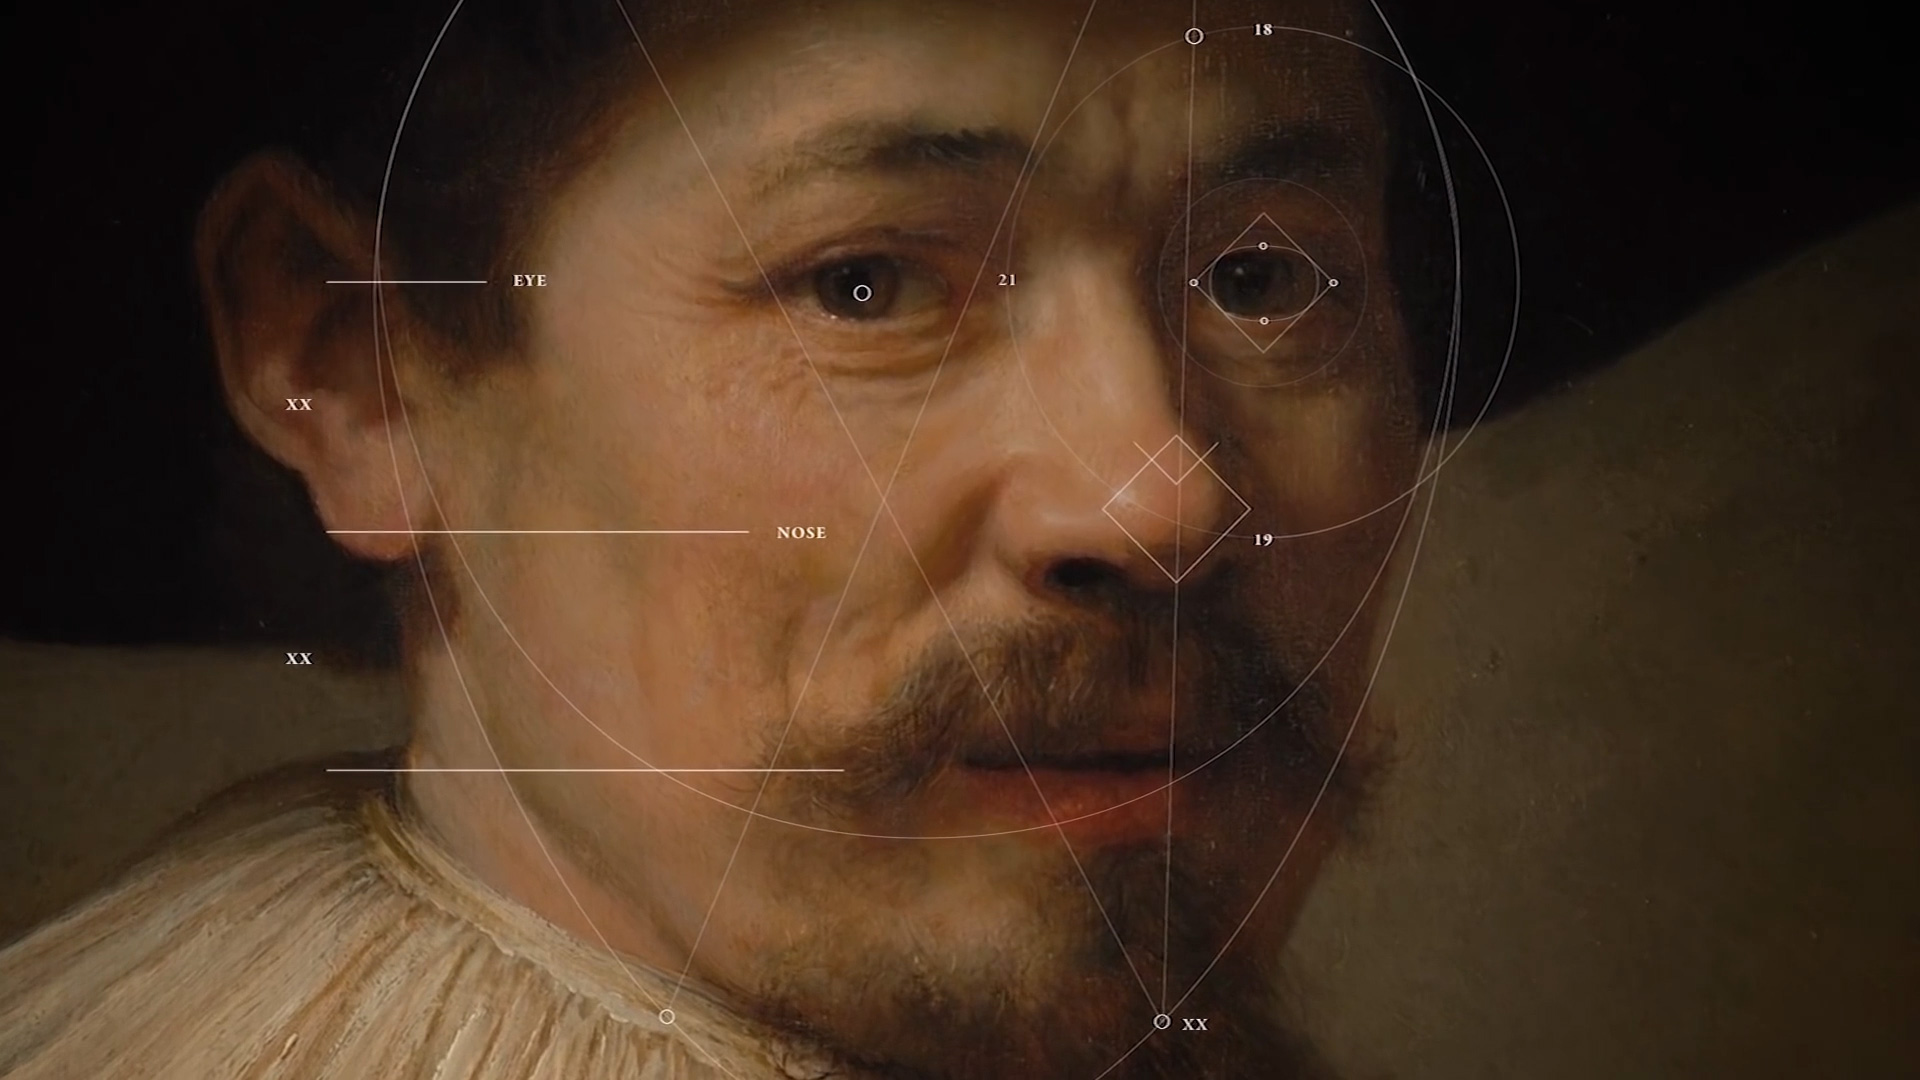 INNOVATE OR PERISH: THE NEXT REMBRANDT